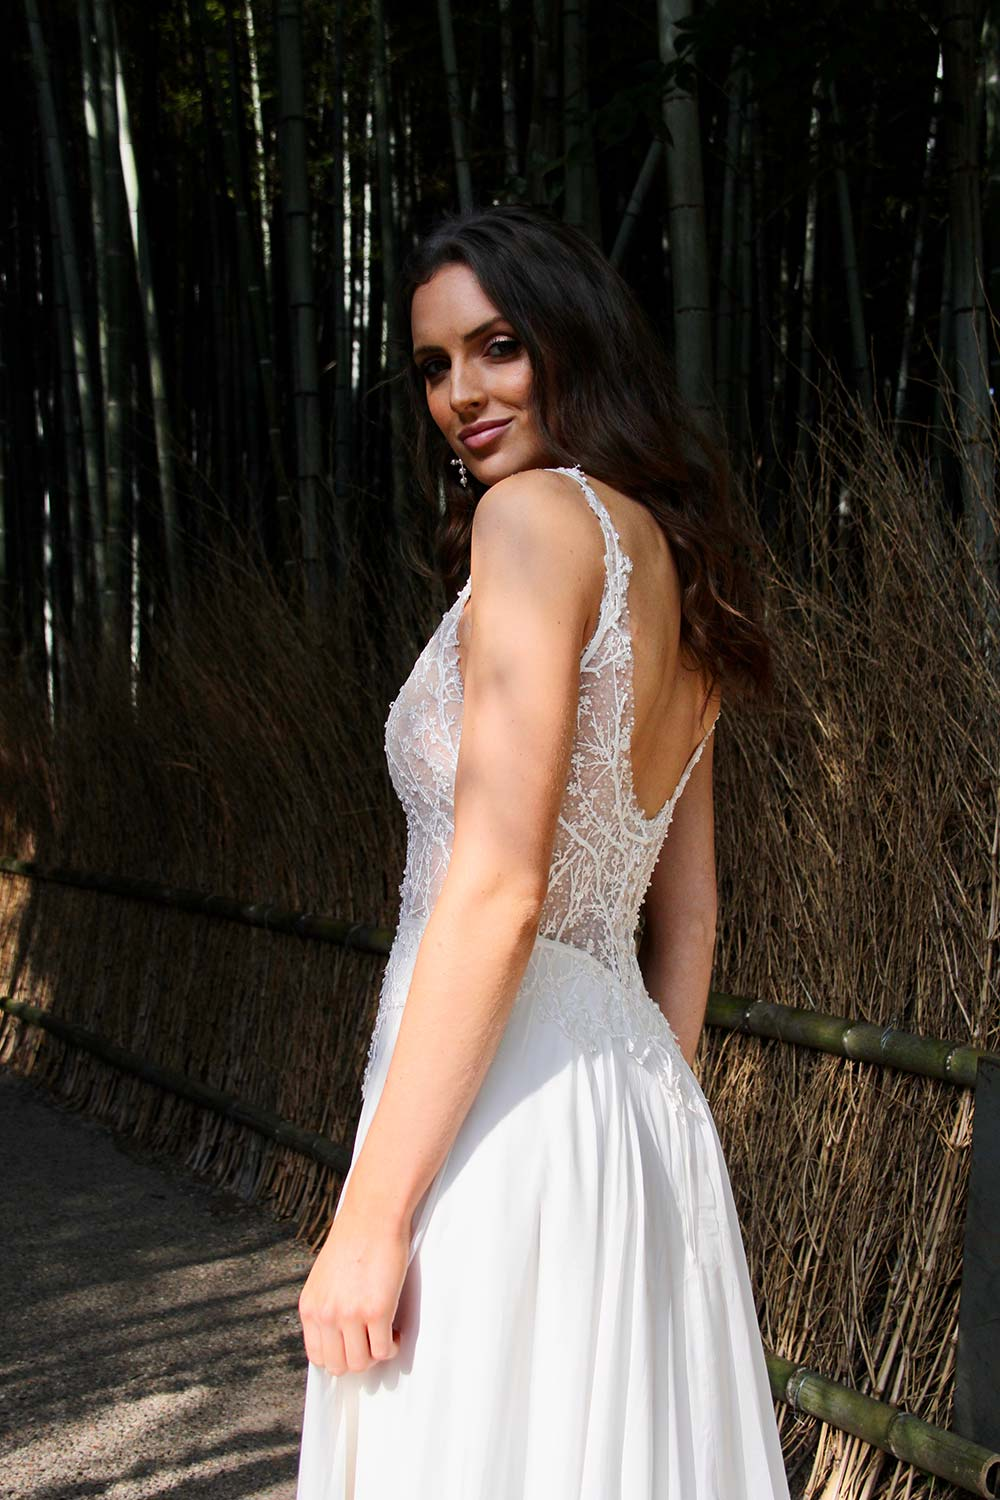 Female model wearing Vinka Design An Oriental Affair Wedding Dress. In a Japanese bamboo forest the side detail of a gown with a bodice of two beaded laces on a nude base and a silk chiffon skirt with side split.